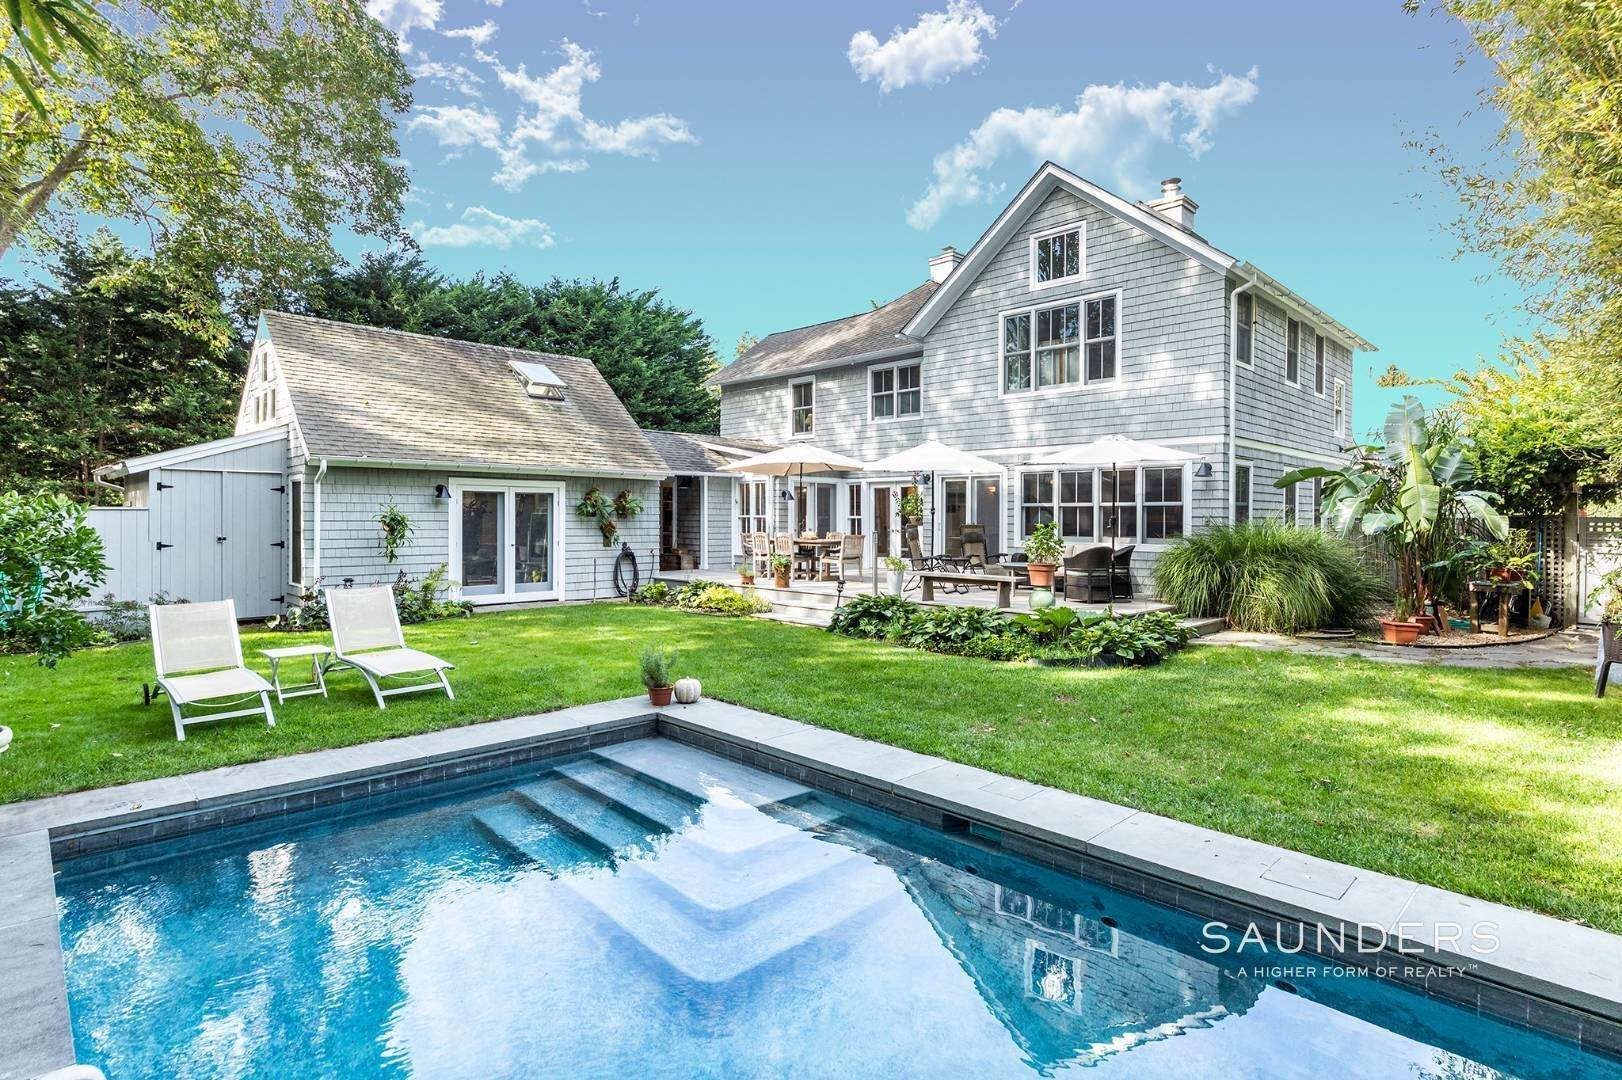 Single Family Homes for Sale at East Hampton Village Jewel 12 Gould Street, East Hampton, East Hampton Town, NY 11937